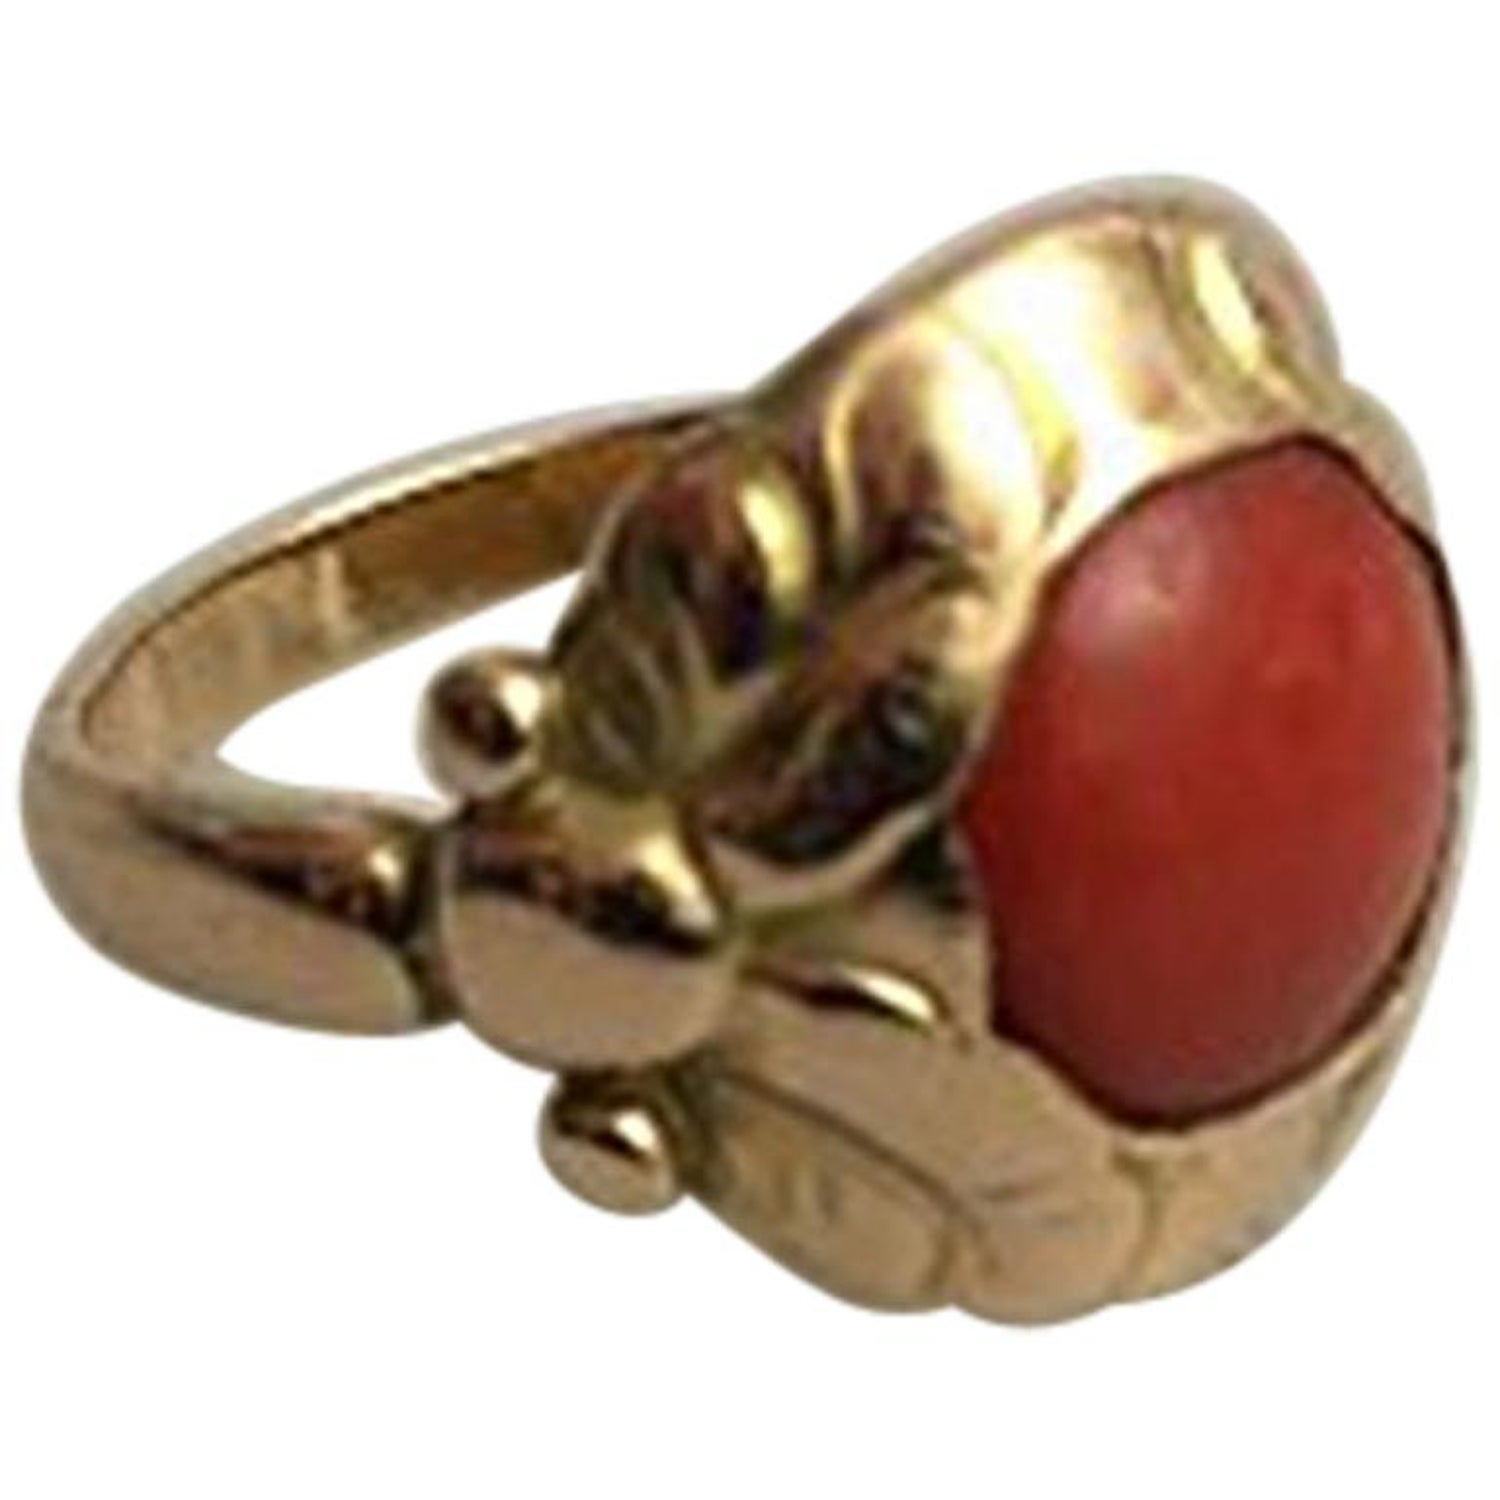 Bare ut Georg Jensen 14 Karat Gold Ring No 111 with Red Stone For Sale at YJ-04